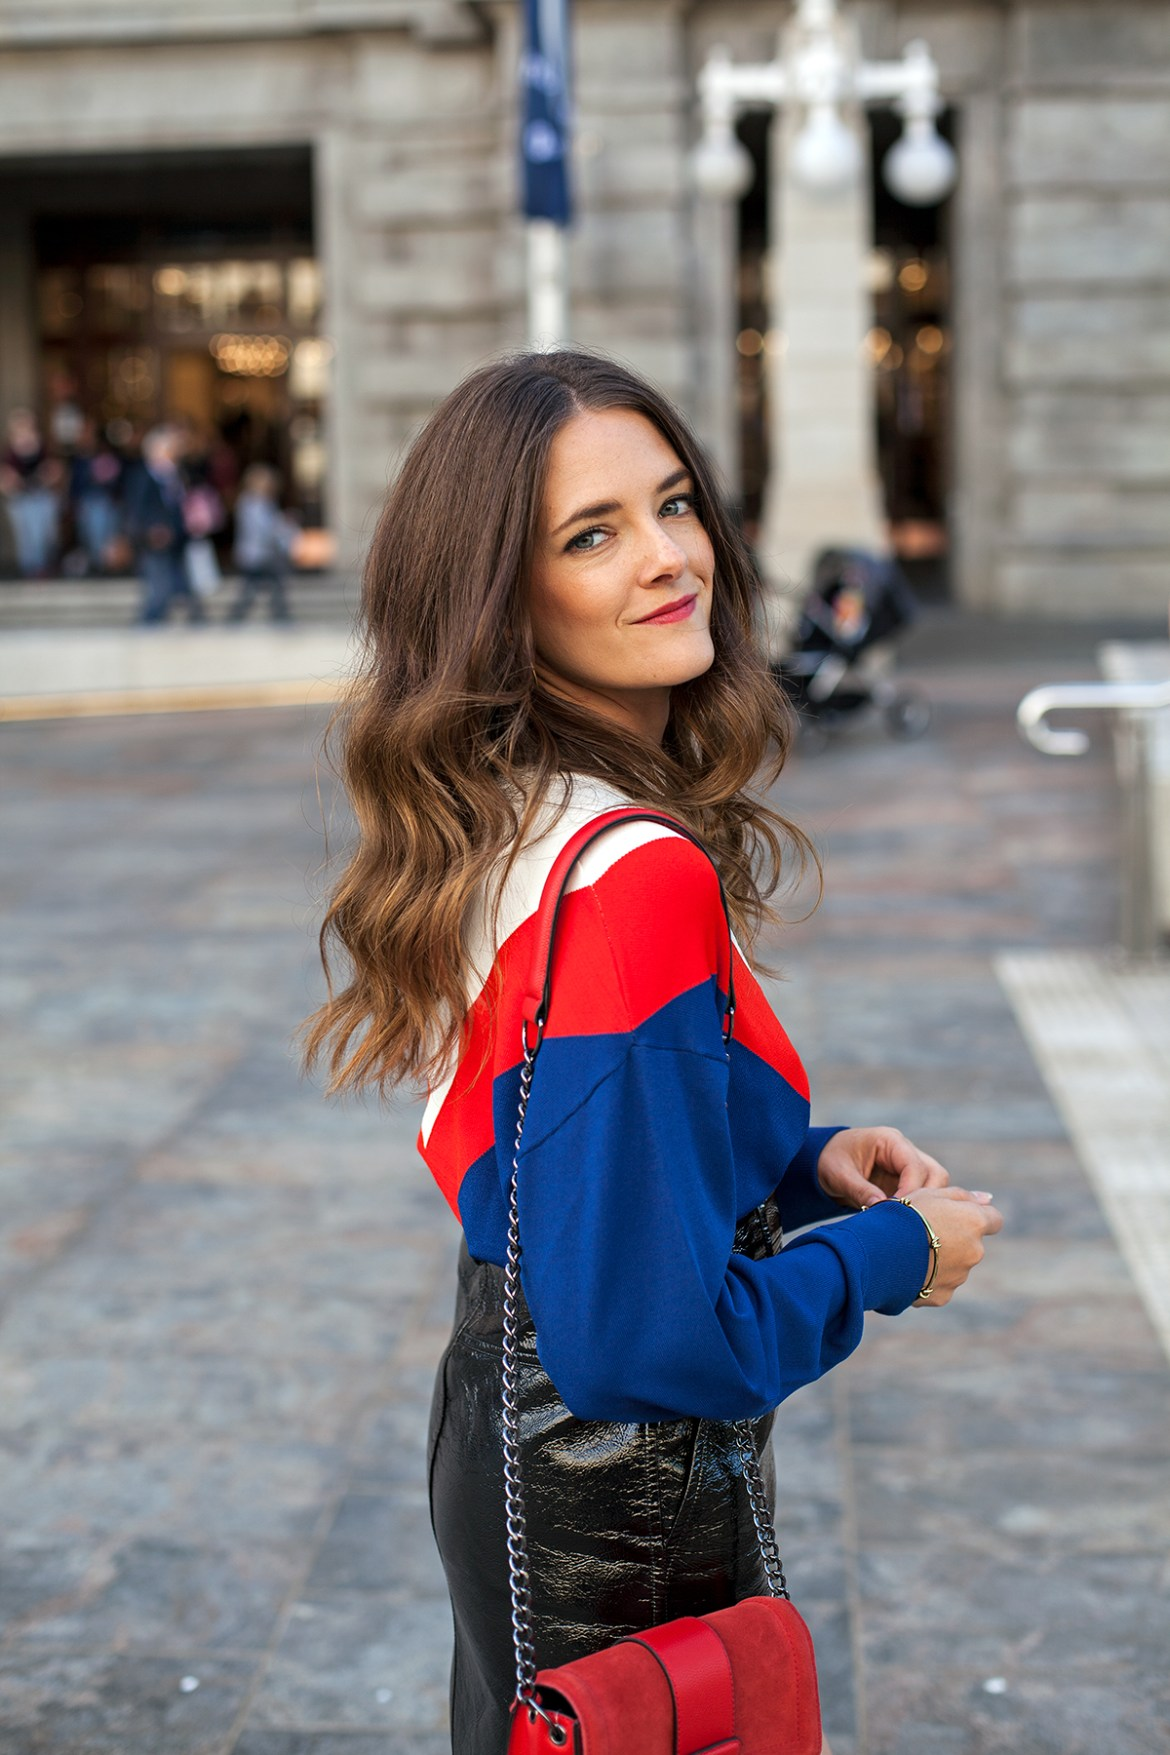 H&M street style for Perth new H&M store on Jenelle, Inspiring Wit Australian fashion blogger. In red shoulder bag and blue and red v top